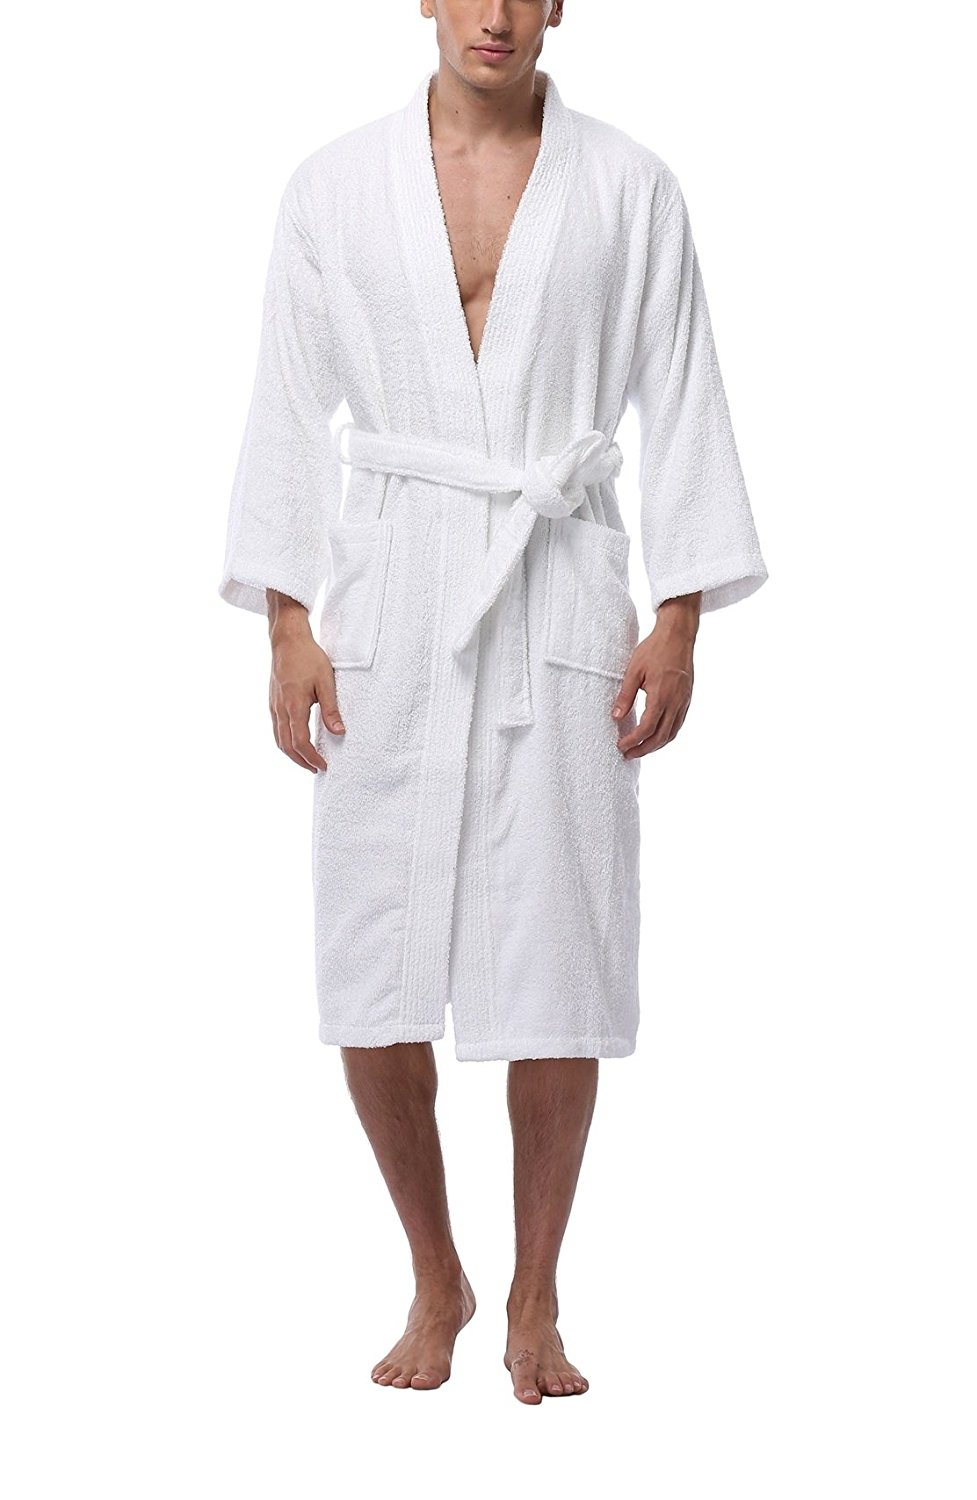 5a58133c0c Get Quotations · FADSHOW Men s Terry Cloth Robe Unisex Hotel Spa Bathrobes  Turkish Cotton Wrap Robes